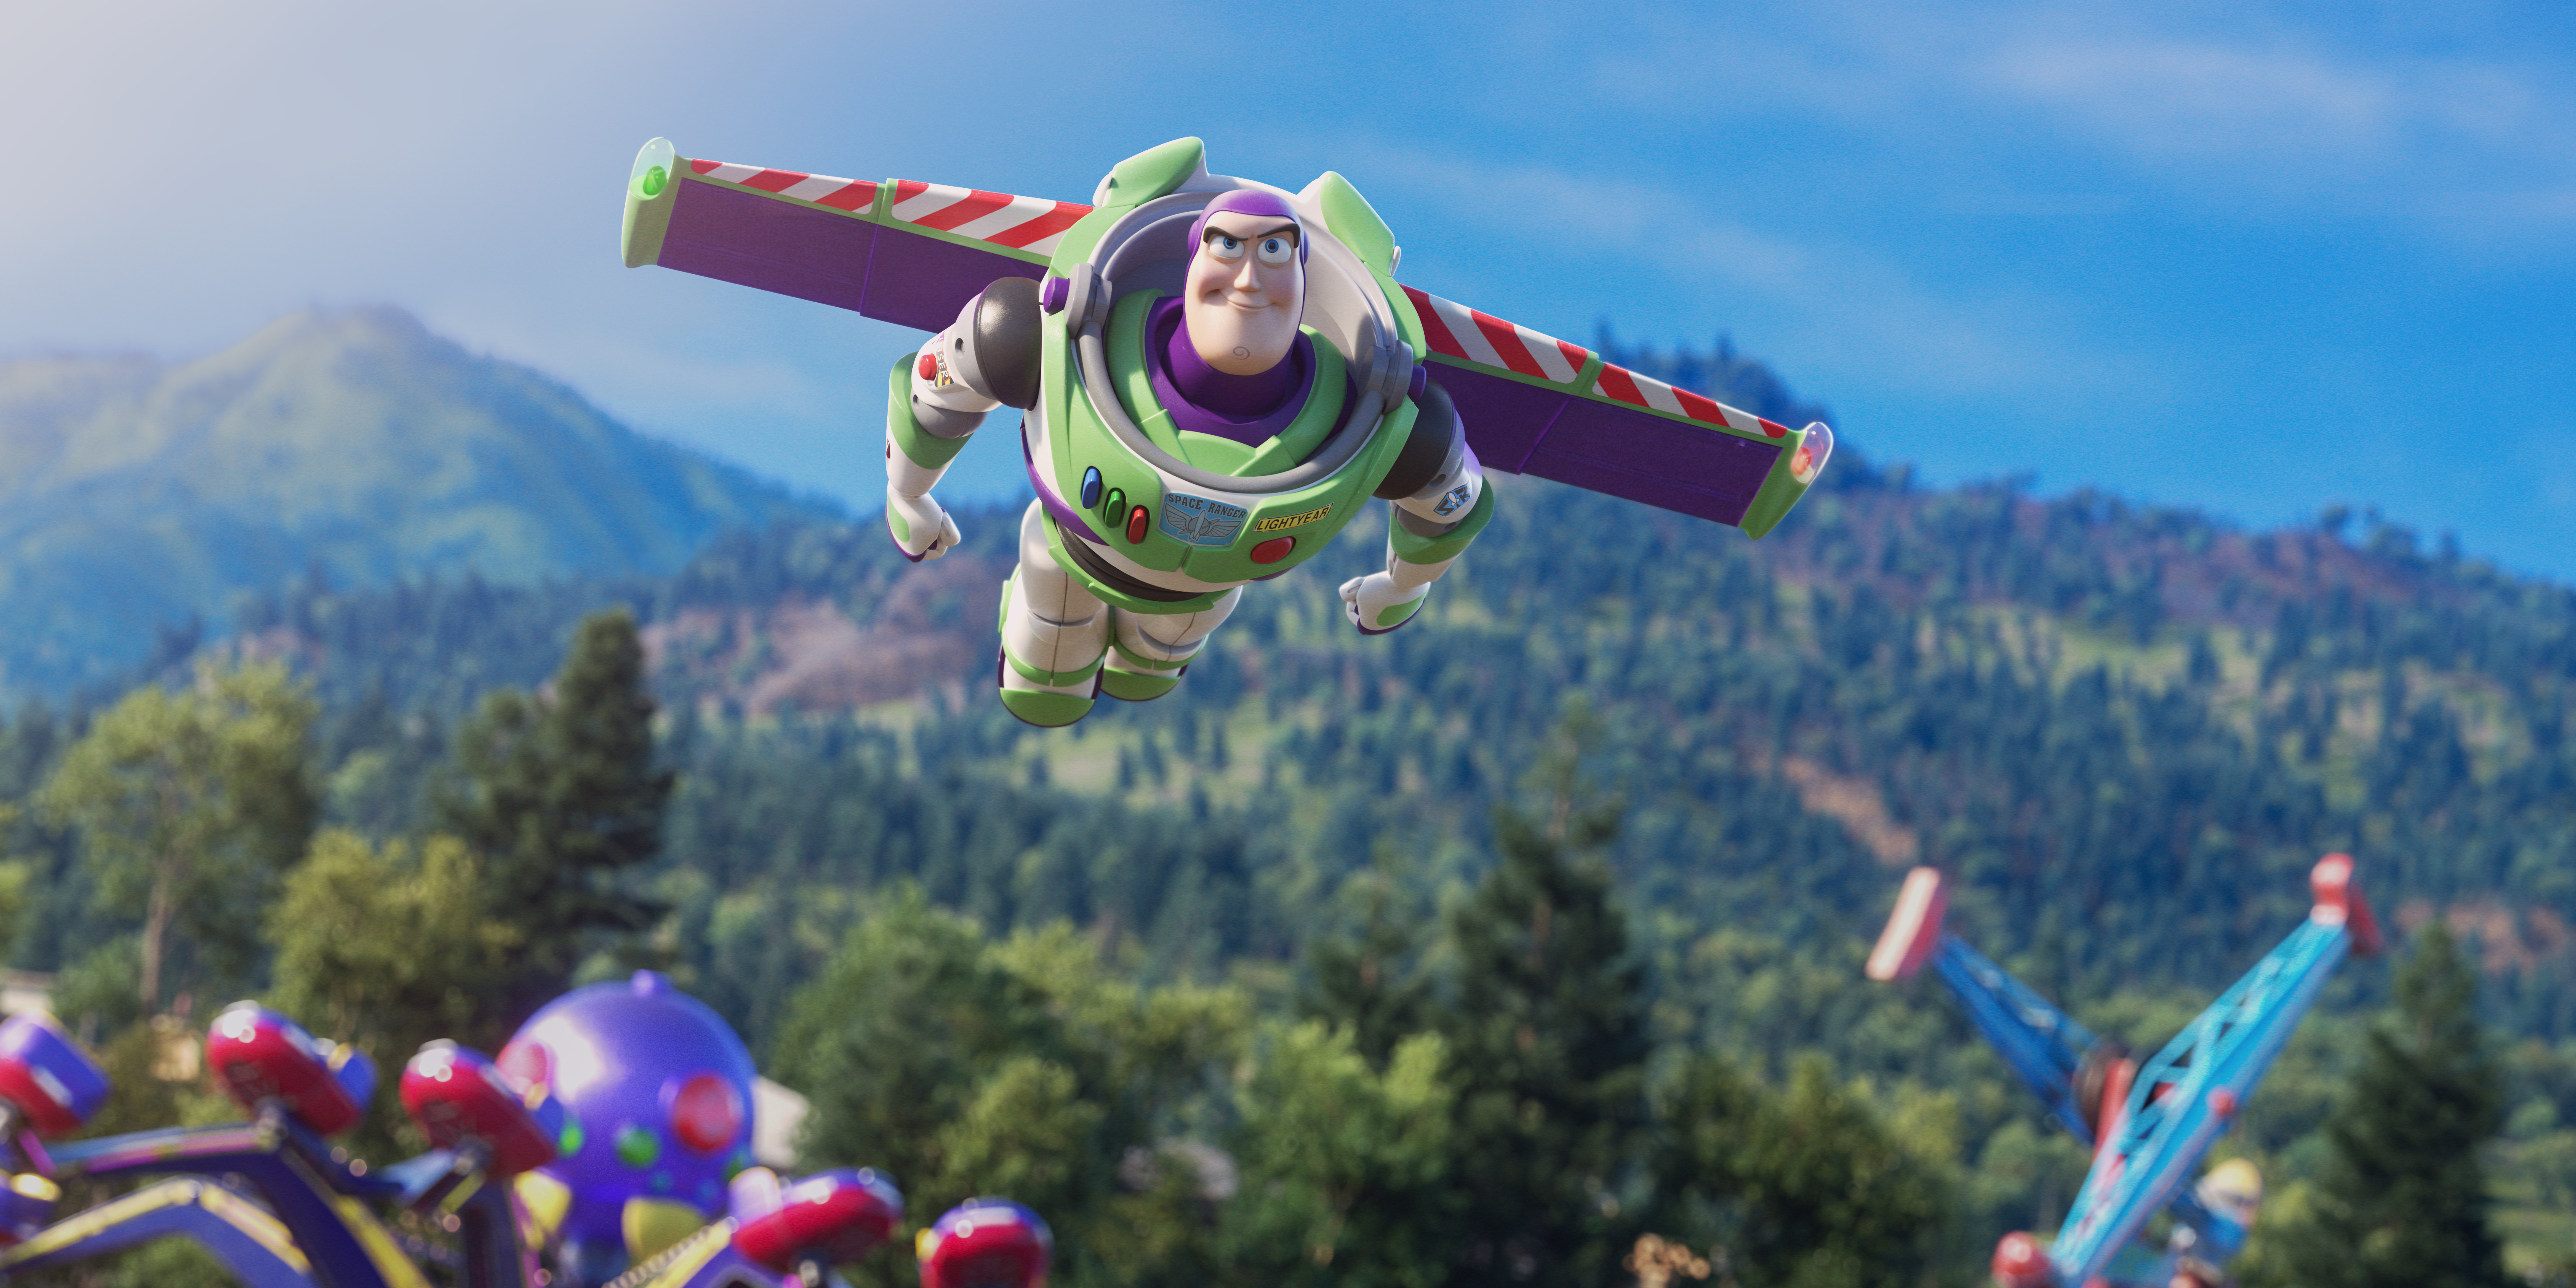 Toy Story 4 5k Retina Ultra Hd Wallpaper Background Image 6144x3072 Id 1025972 Wallpaper Abyss